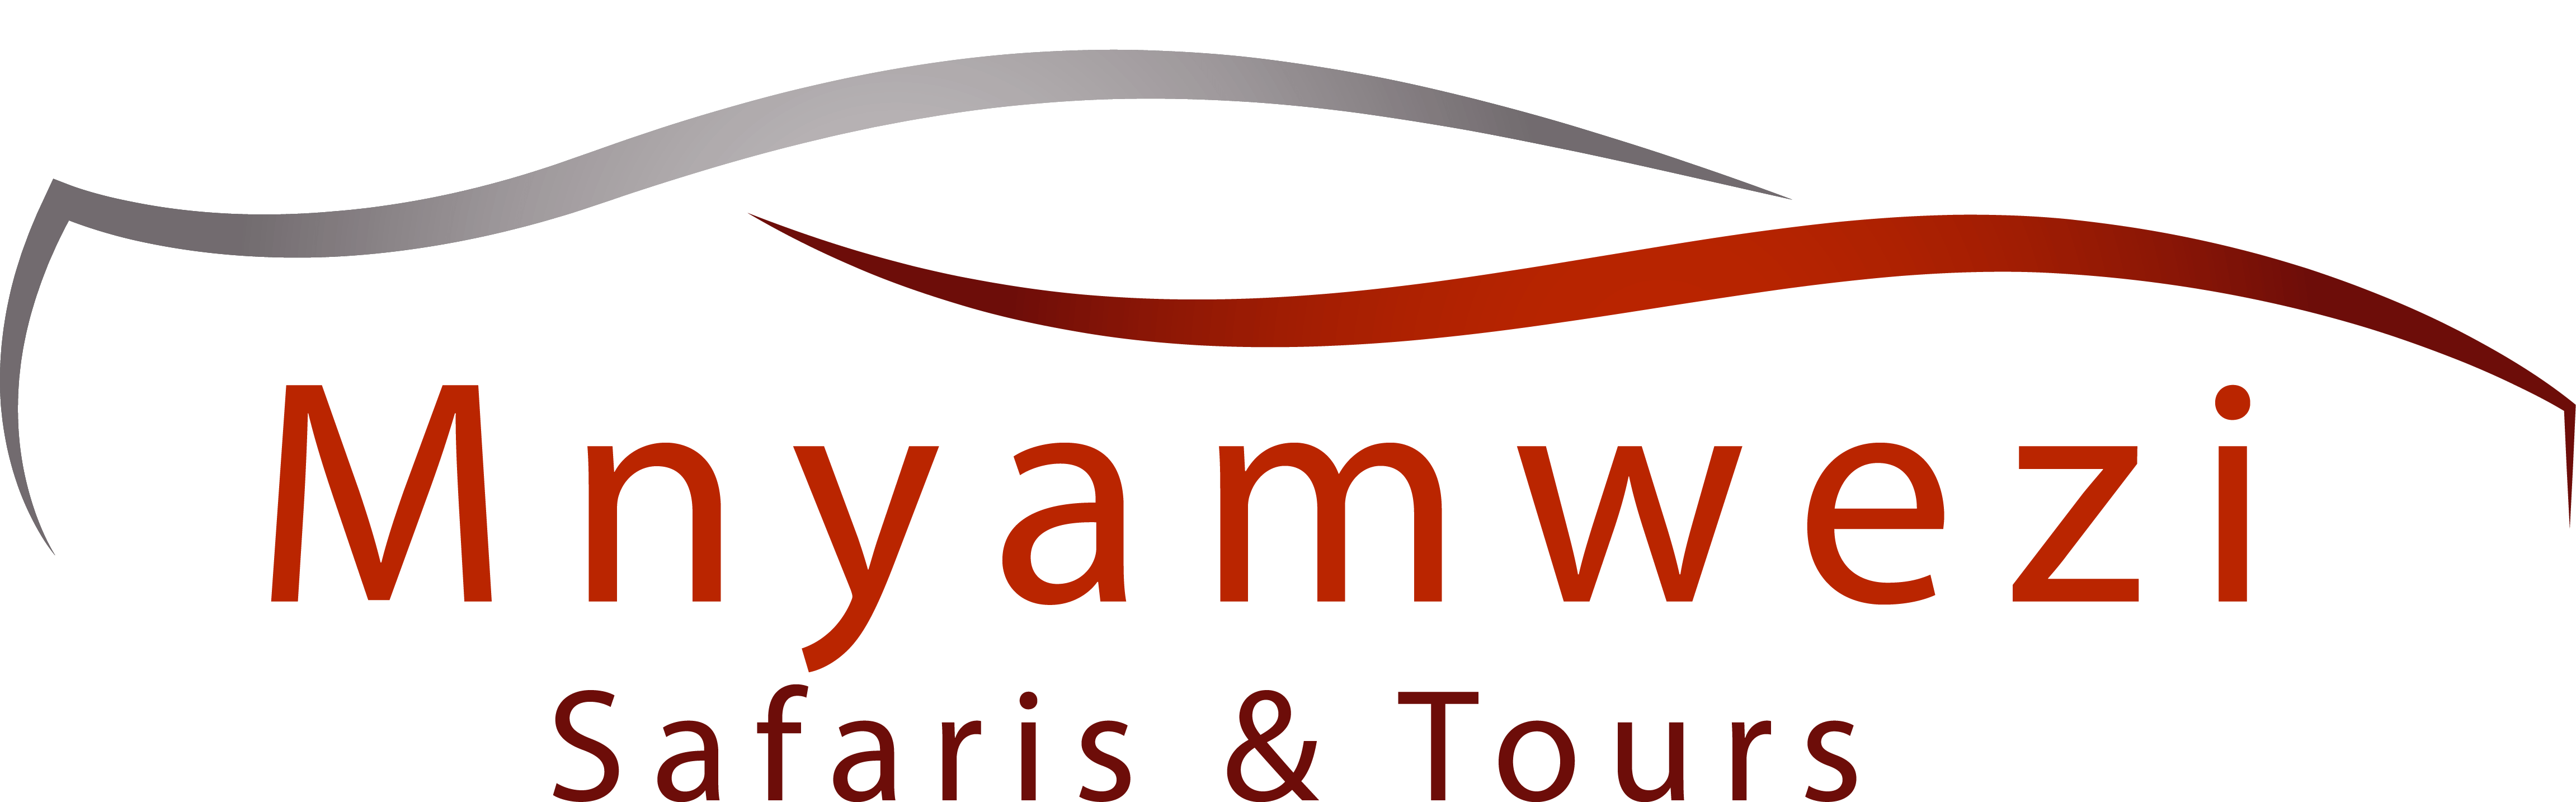 Mnyamwezi tours & Safaris